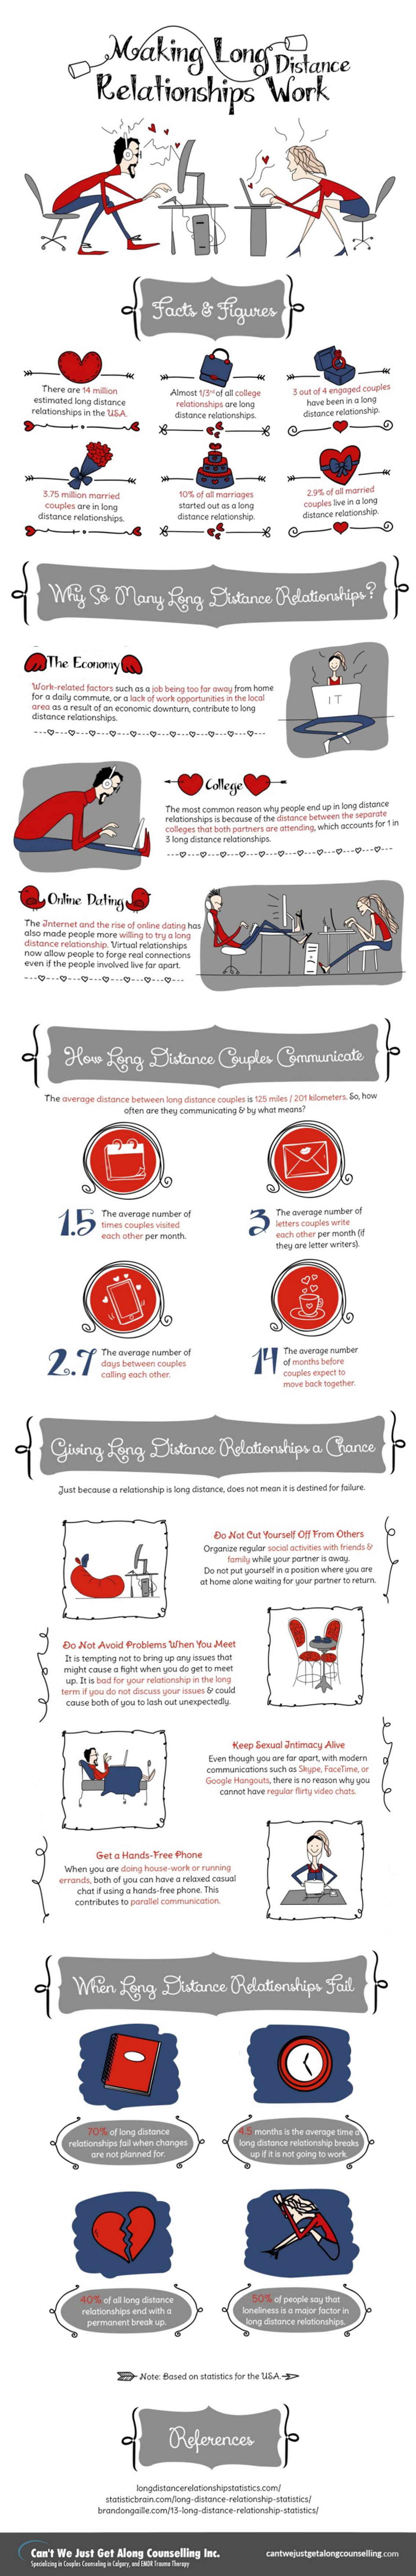 Making Long Distance Relationships Work - Dating Infographic